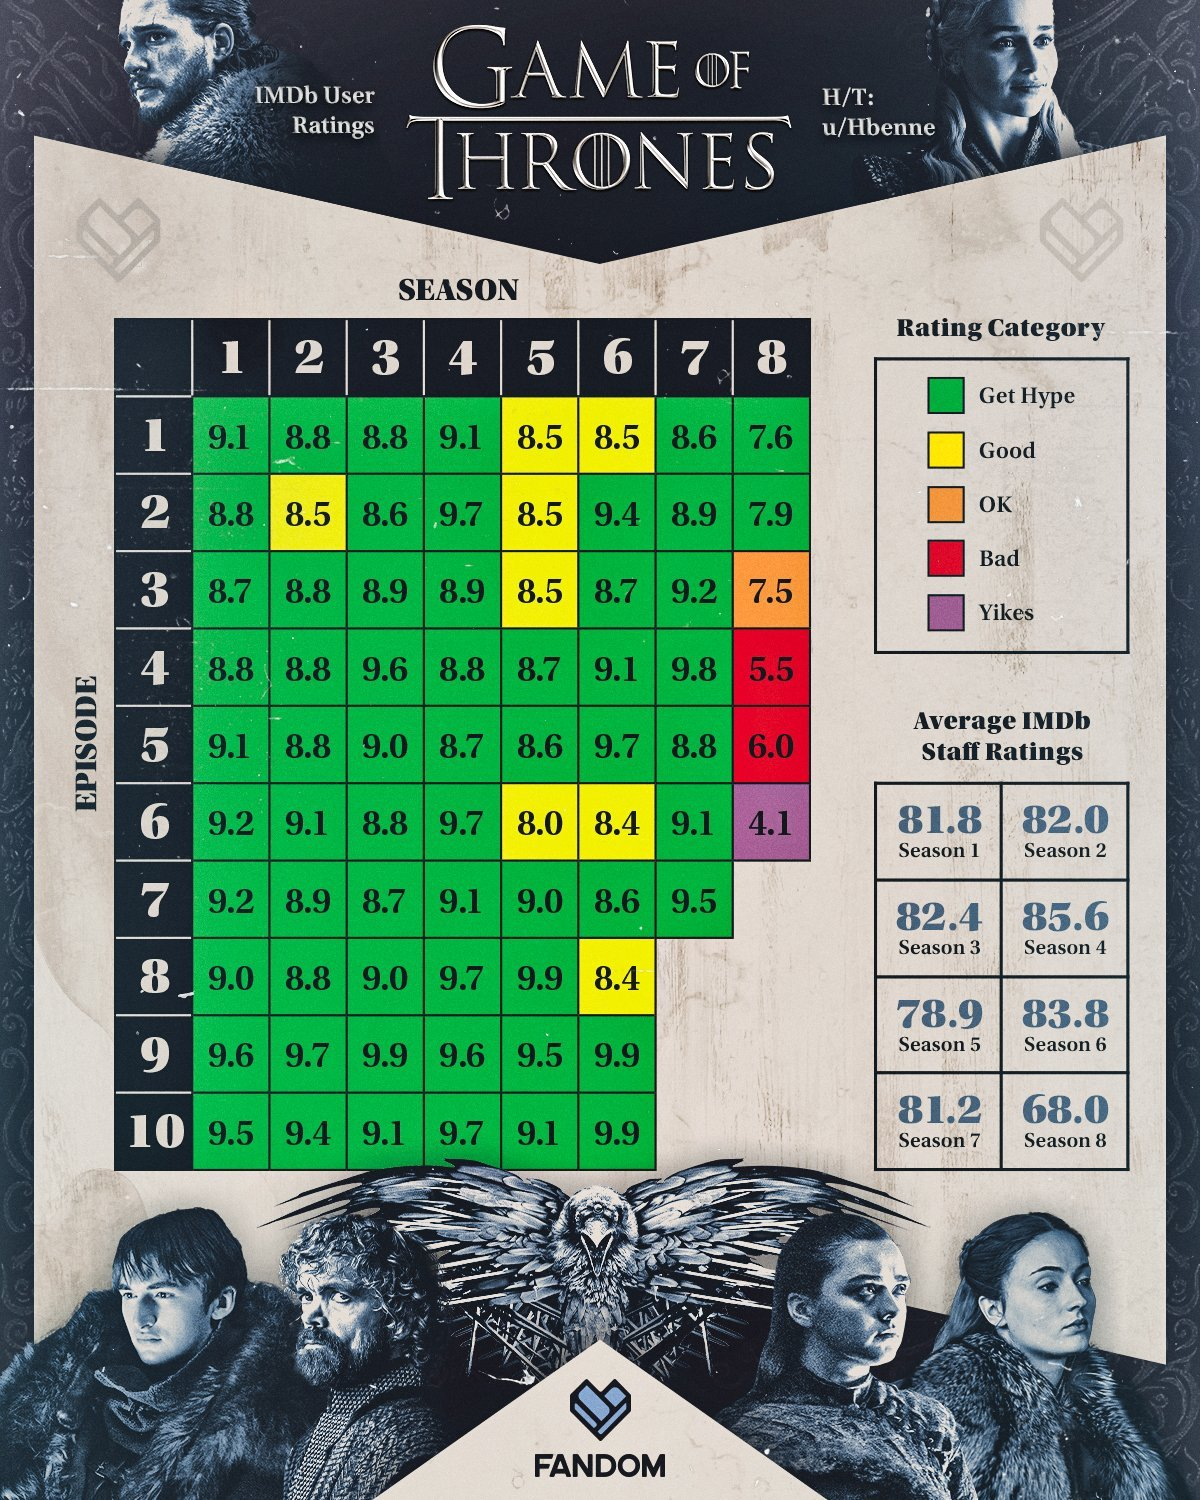 Game of Thrones by the IMDb User Ratings